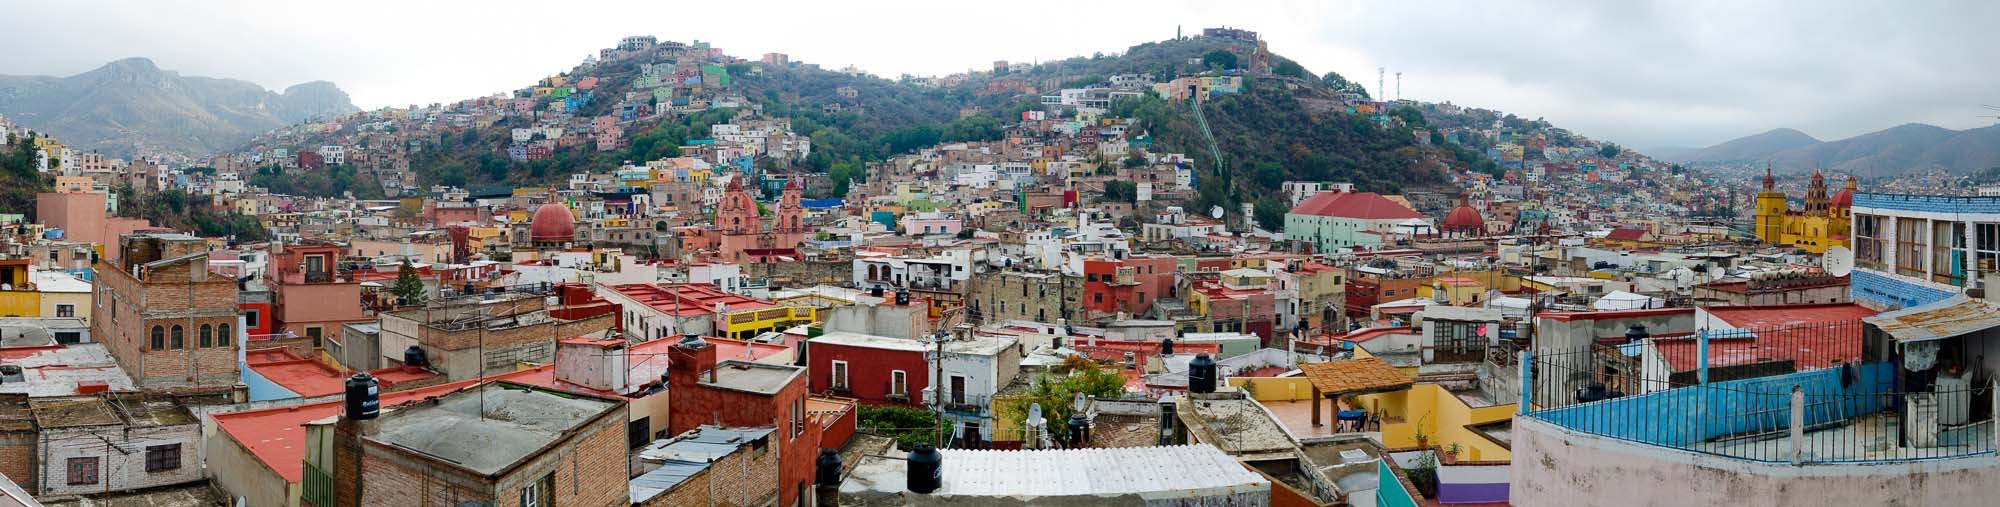 Guanajuato view 2 by Winnipeg travel photographer